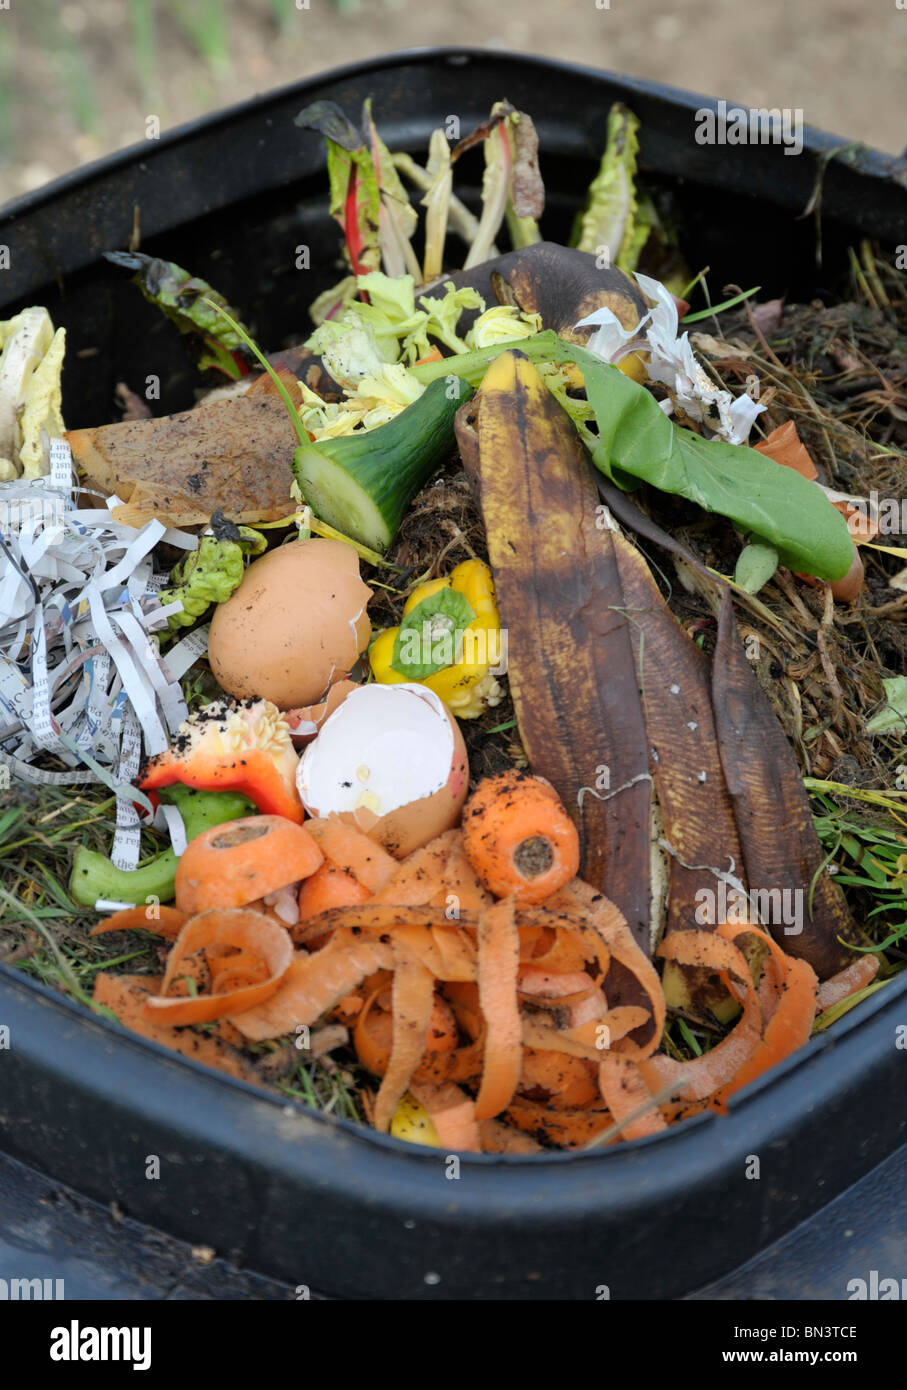 Vegetable And Fruit Waste In A Garden Compost Bin Stock Photo